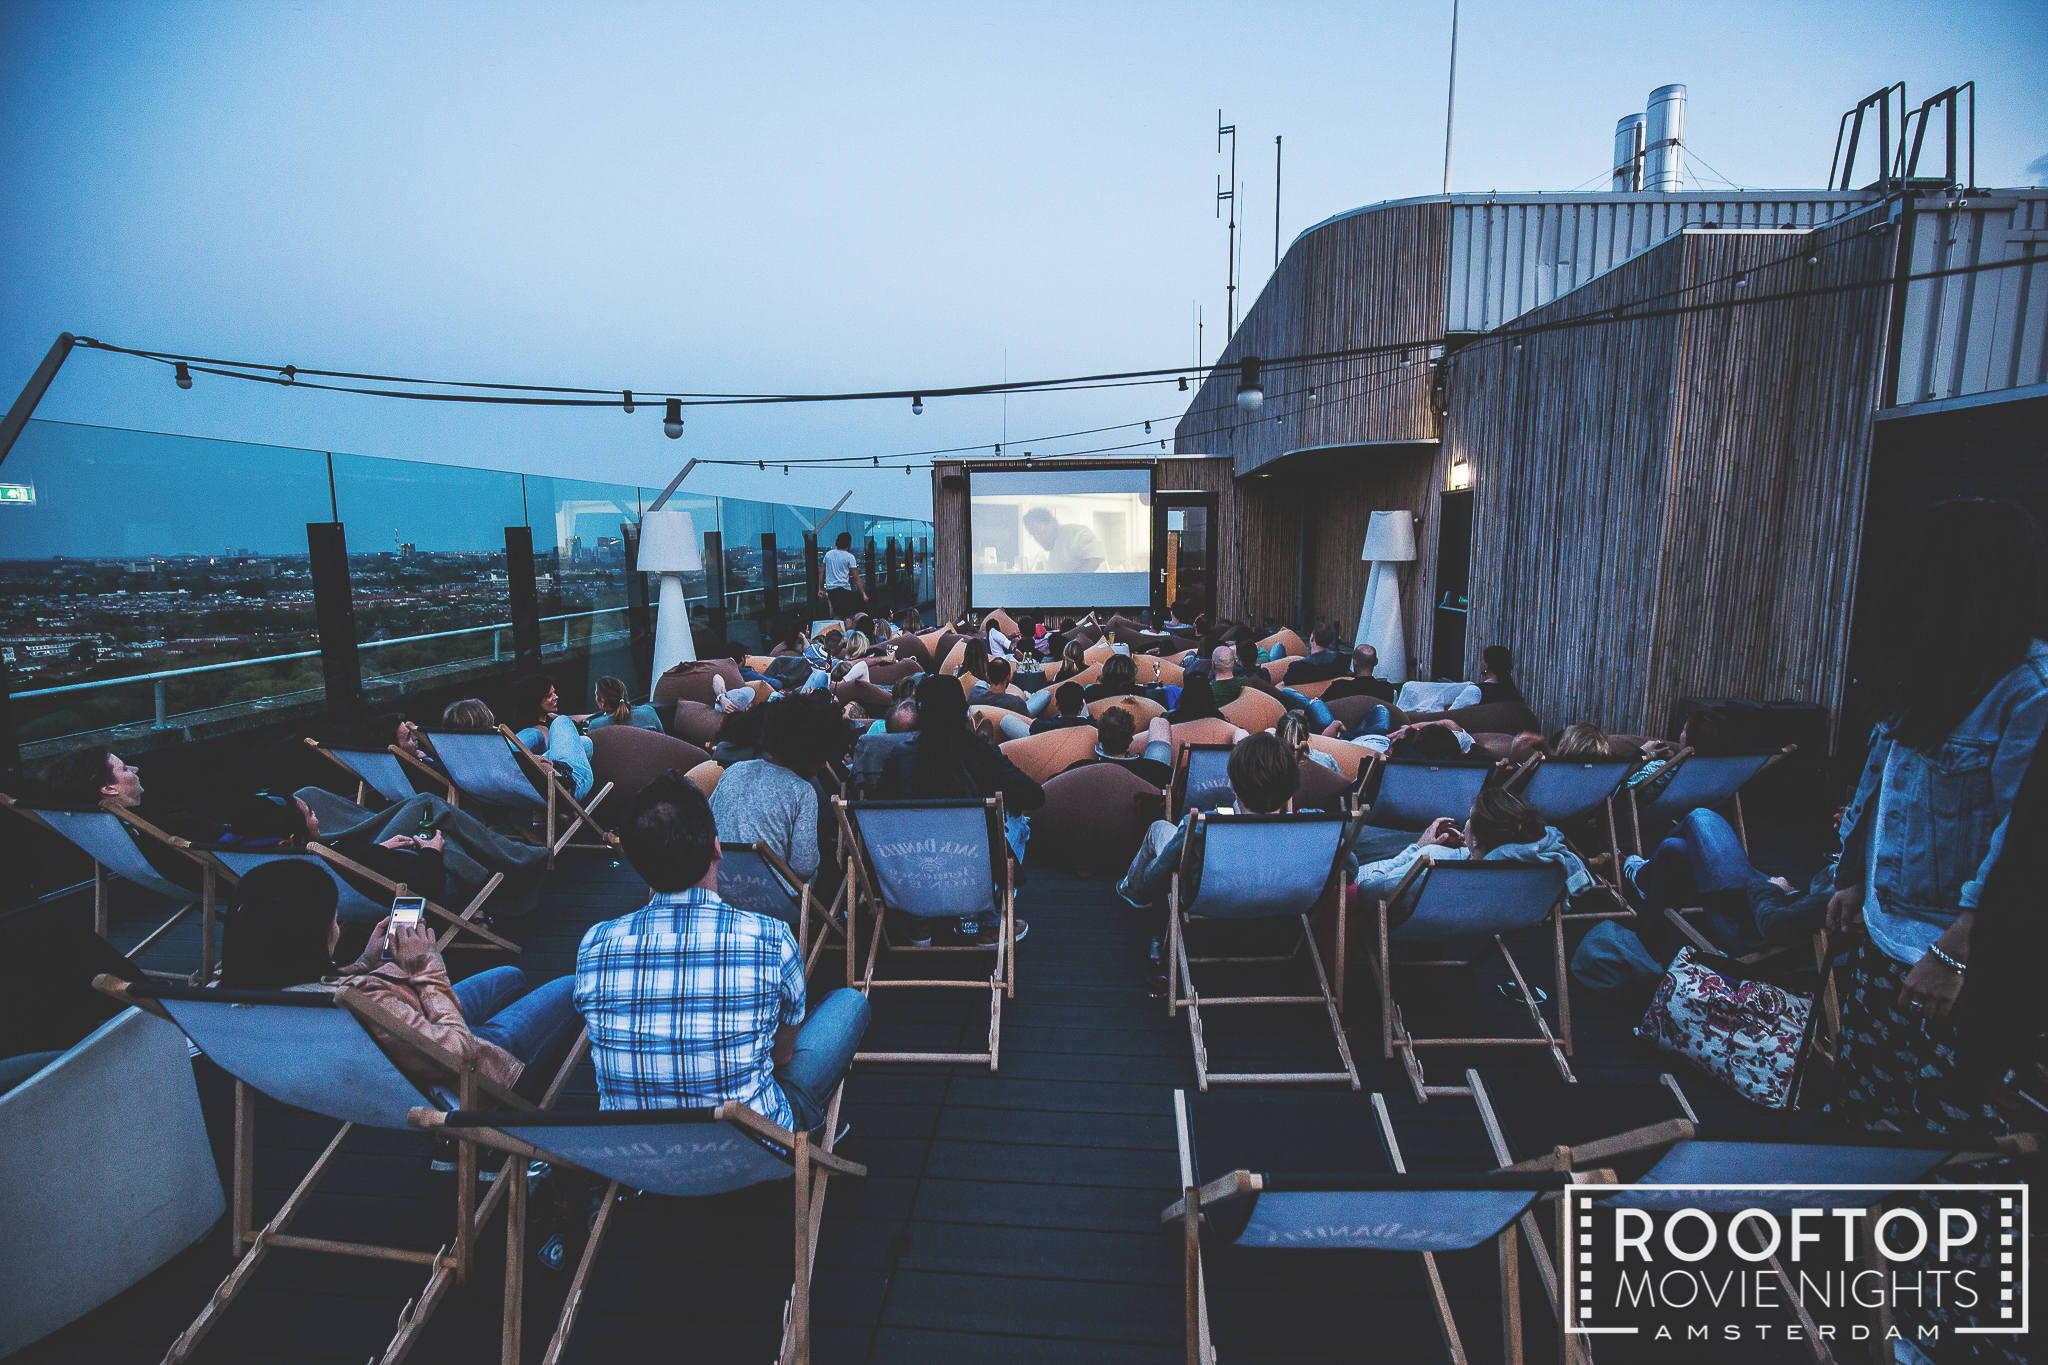 © RooftopMovieNights